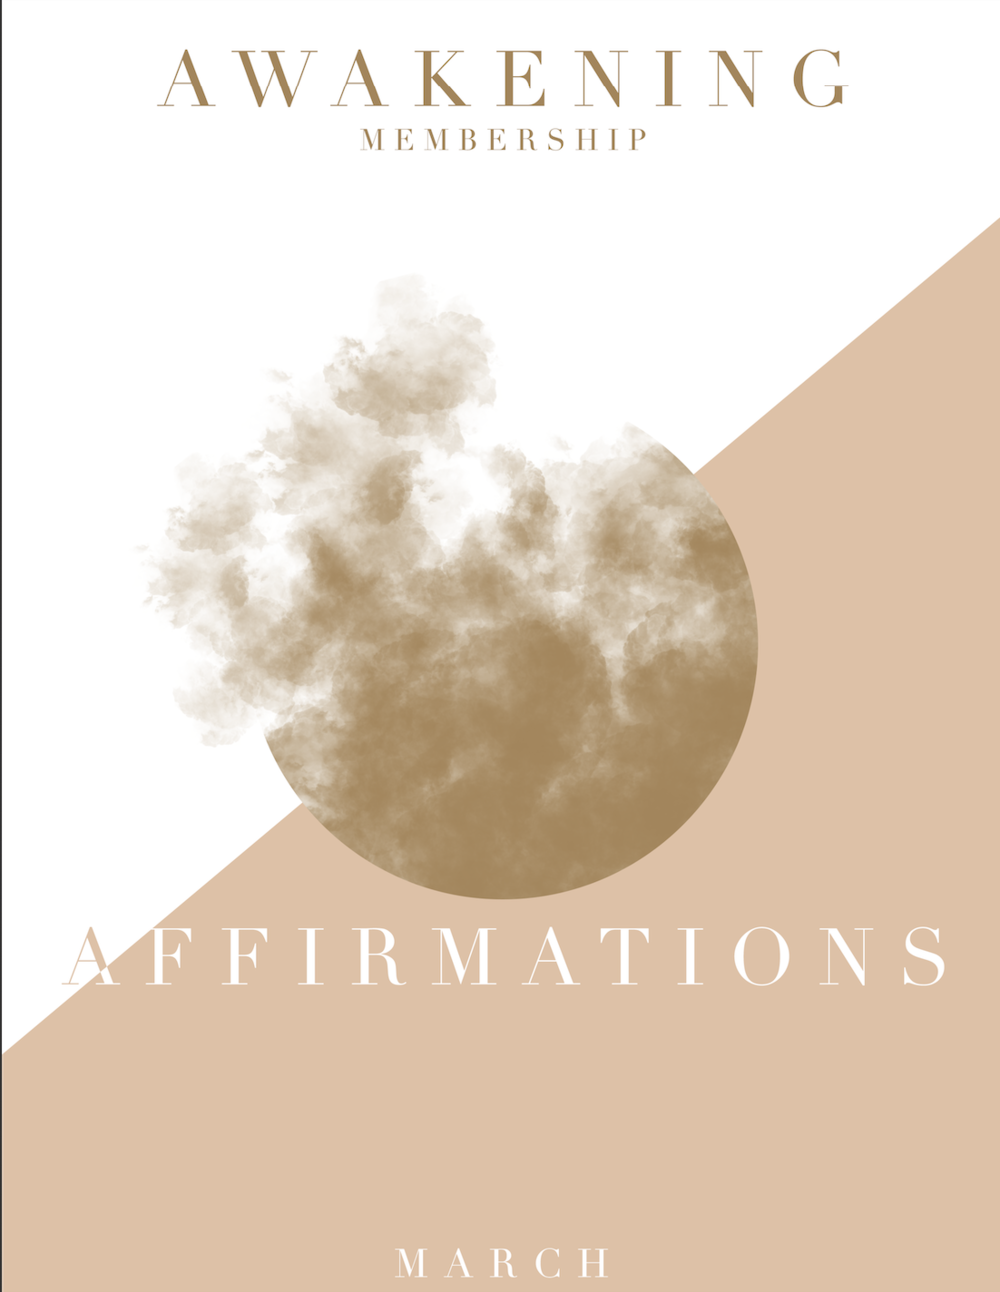 2019 - March Affirmations